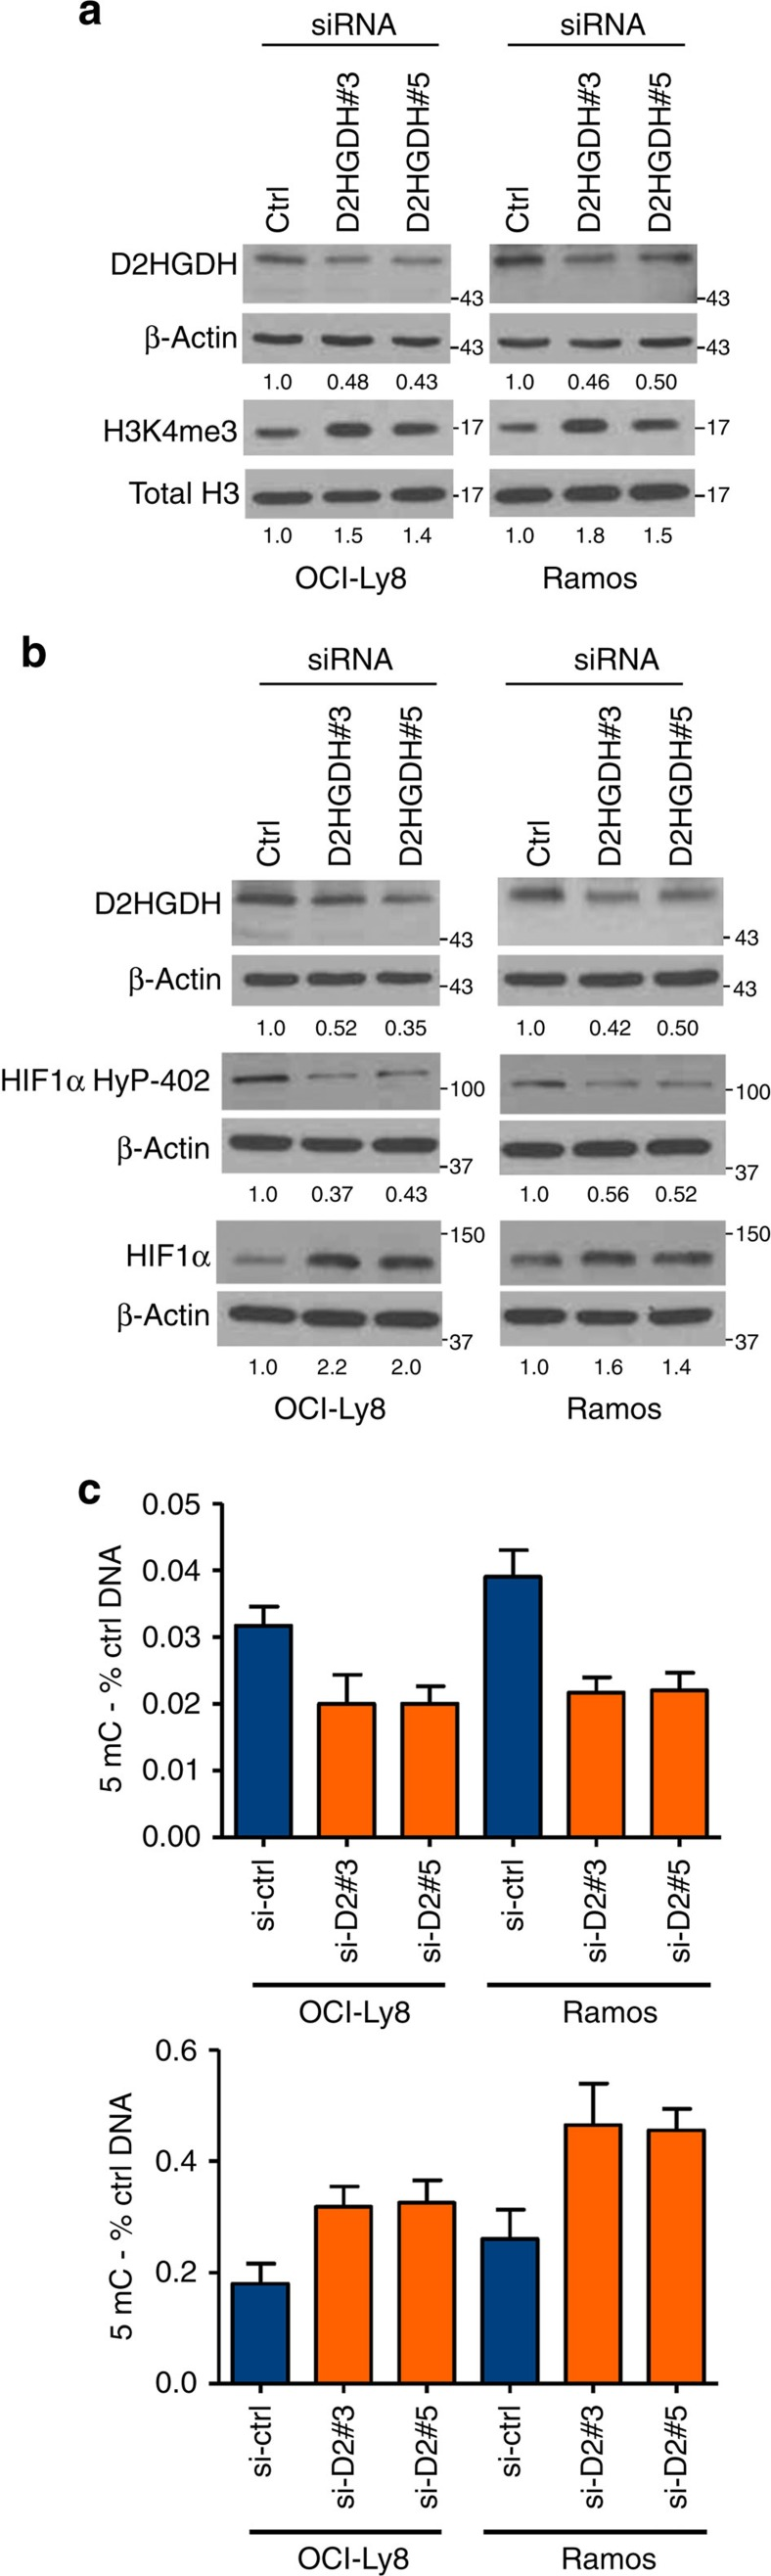 Partial knockdown of D2HGDH in B-cell lymphoma cell lines significantly modifies histone/DNA methylation and HIF1α hydroxylation. ( a ) SiRNA-mediated partial knockdown of D2HGDH with two targeting oligonucleotides increased the methylation levels of H3K4me3 in comparison with cells transfected with a control siRNA. ( b ) Under hypoxia (1% O 2 , 16 h), B lymphoma cells with partial suppression of D2HGDH expression displayed lower HIF1α hydroxylation and consequent stabilization of total HIF1α. In a and b , the extent of D2HGDH suppression is shown by western blotting and densitometry quantifies all relevant changes. ( c ) The levels of 5hmC and 5mC (top and bottom panels) were significantly lower and higher, respectively, in cells with a D2HGDH KD when compared with their isogenic controls ( P